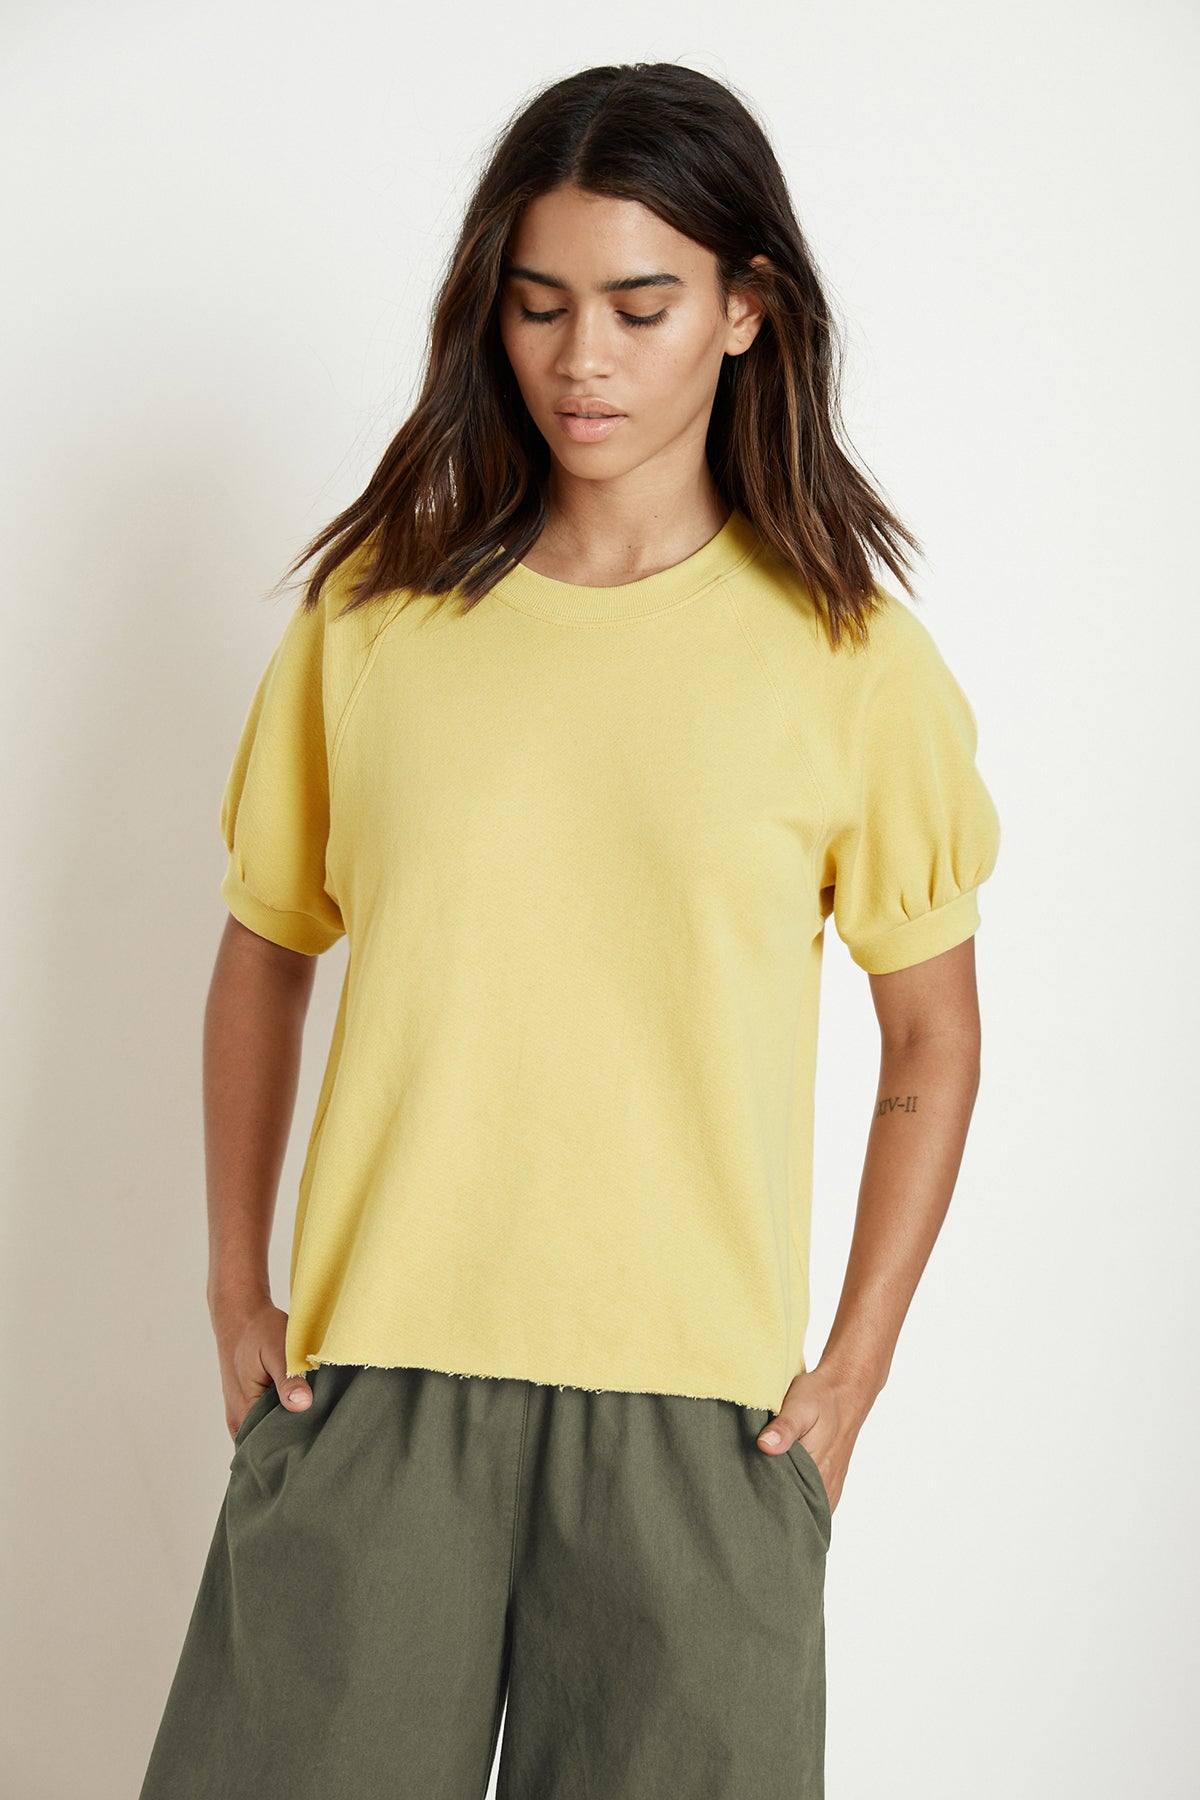 STACIA SHORT SLEEVE RAGLAN TERRY TOP